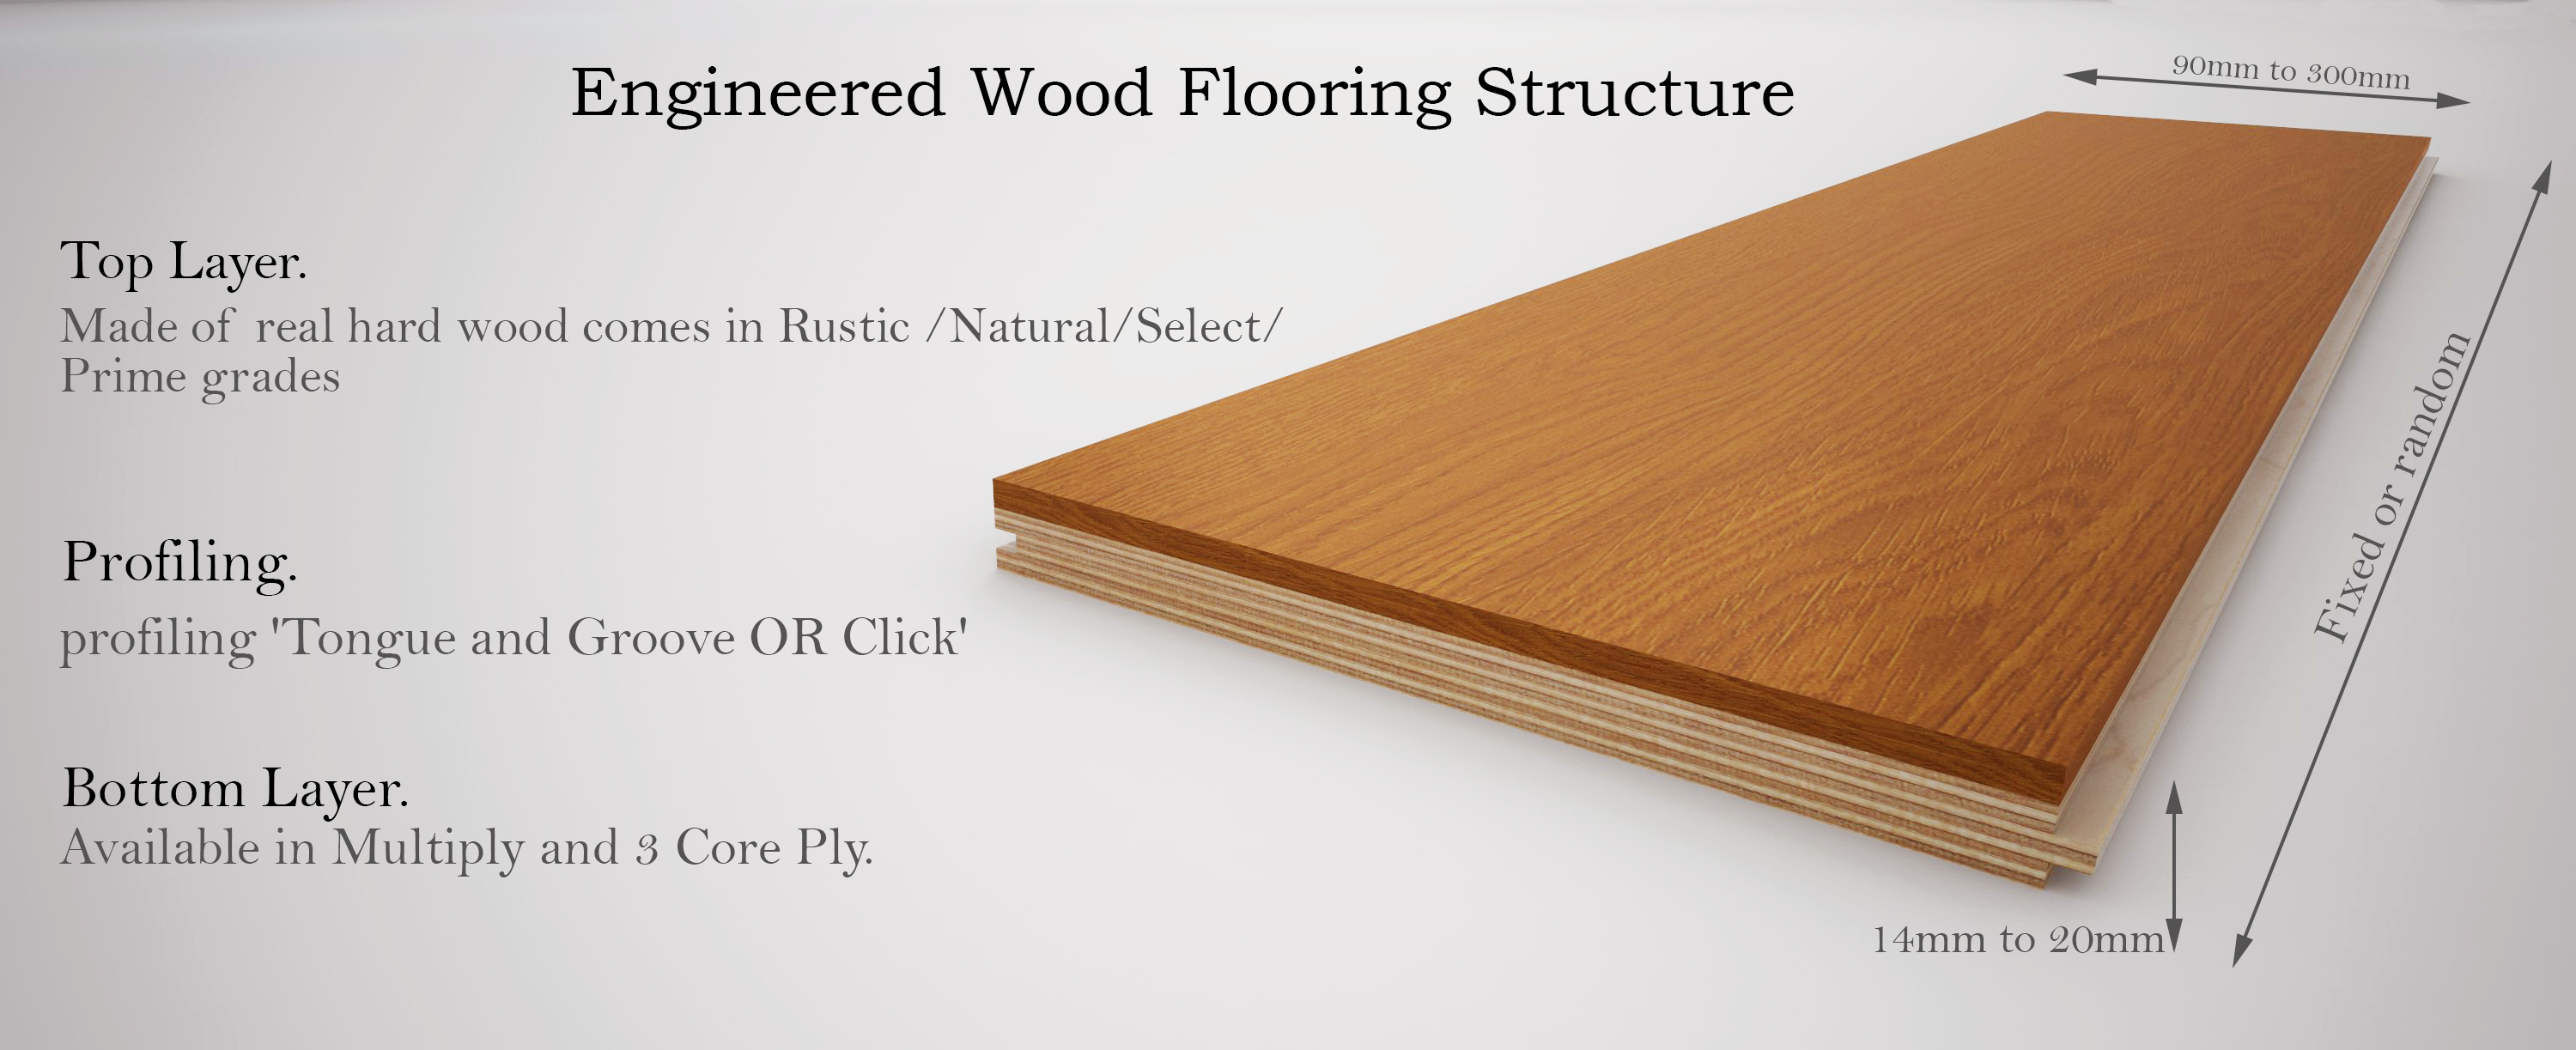 multi layer engineered flooring explained wood and beyond blog. Black Bedroom Furniture Sets. Home Design Ideas